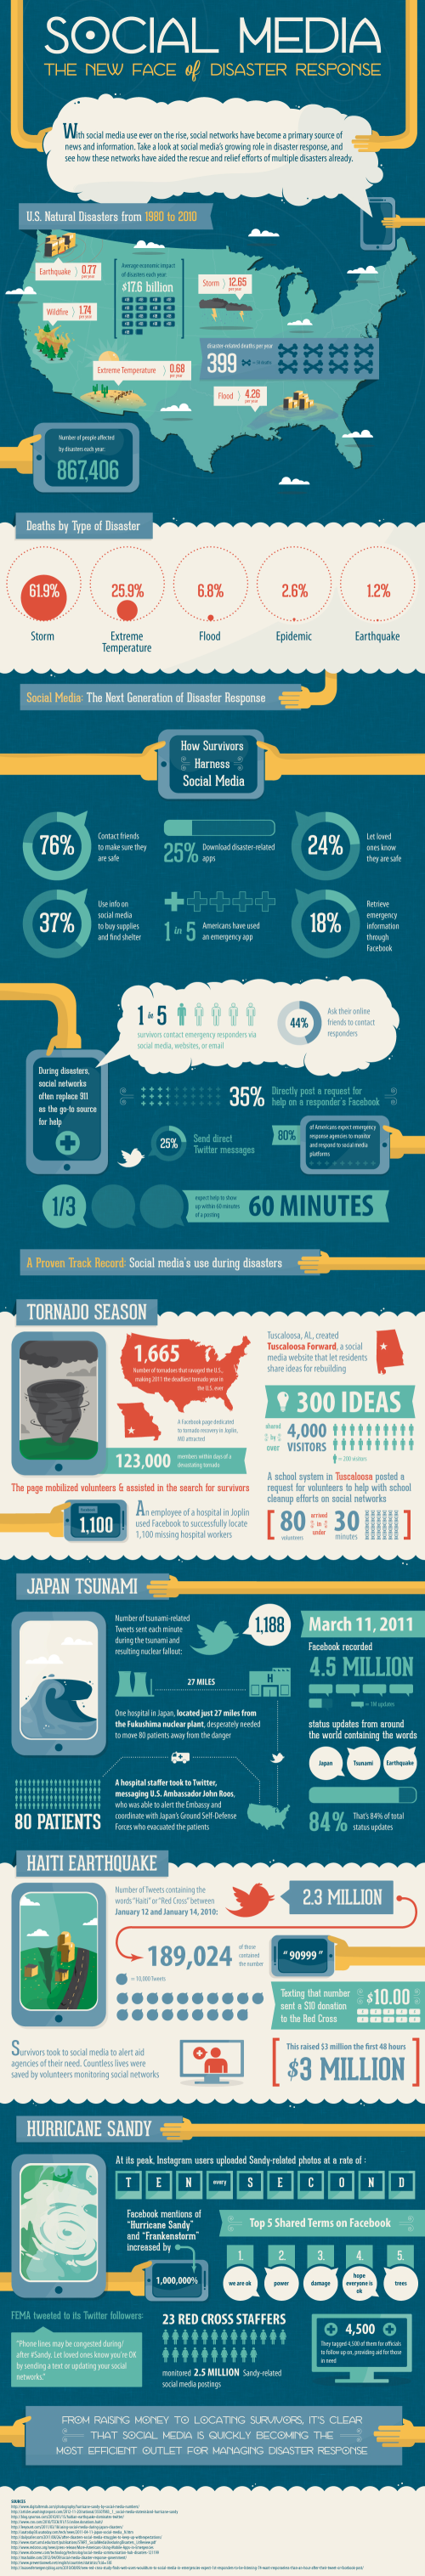 Infographic depicting how social media are used during/after disasters